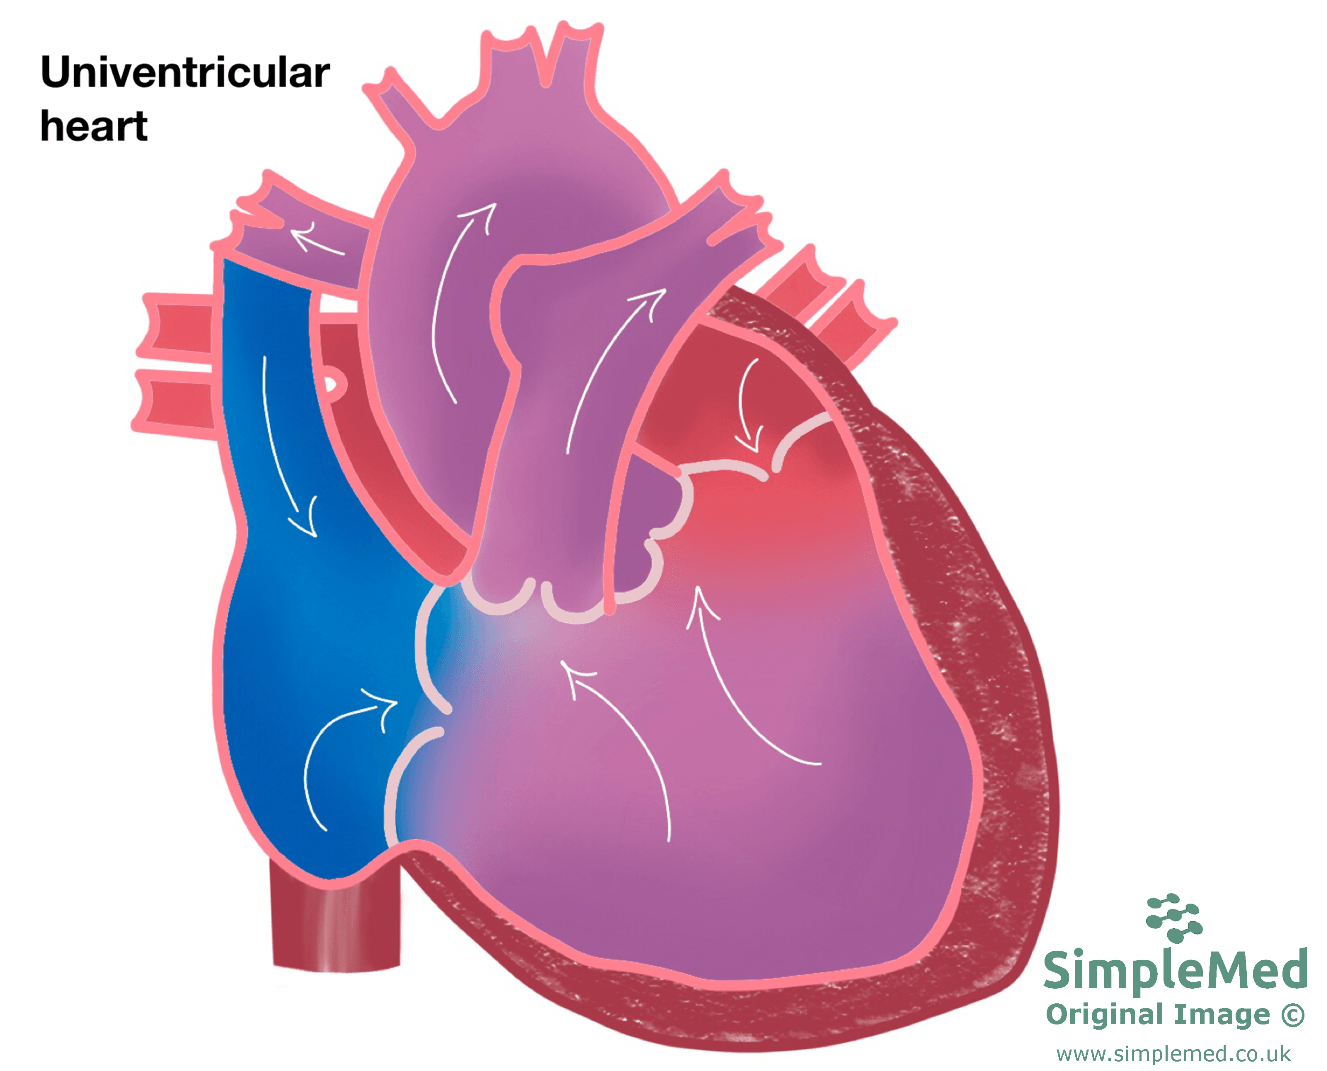 Univentricular Left Heart SimpleMed